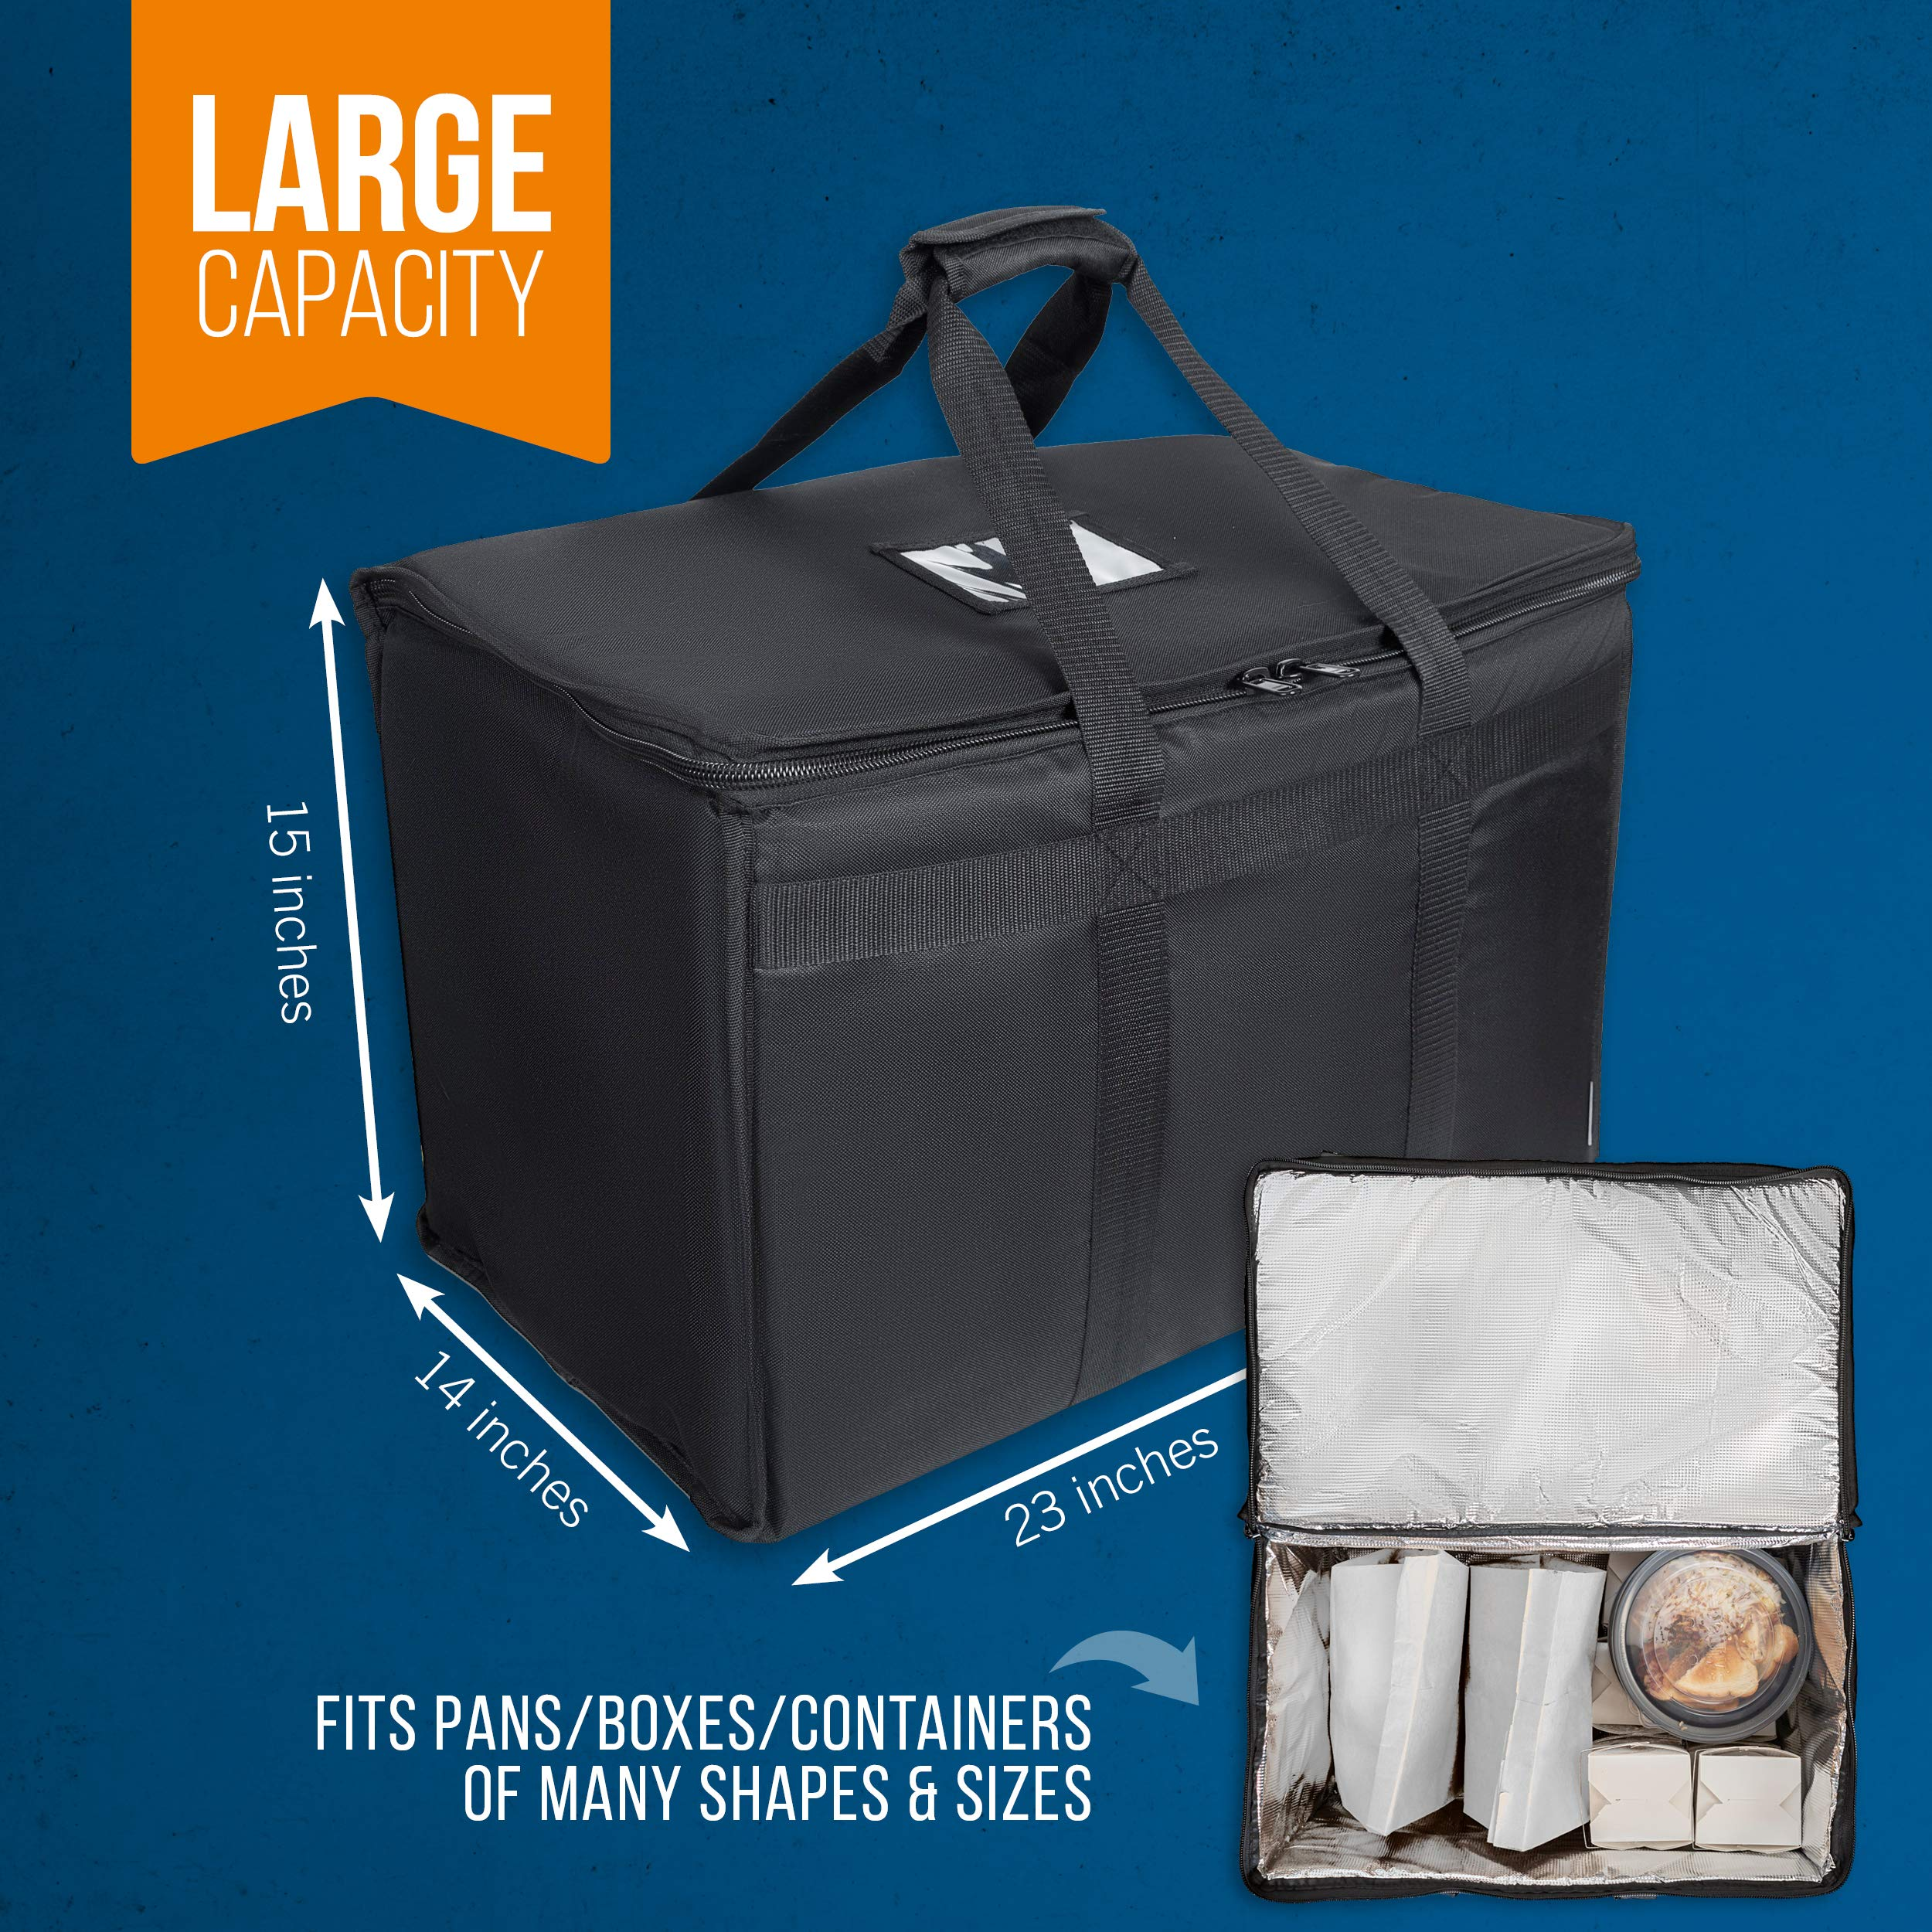 """Food Delivery Bag. Heavy Duty Bag with Strong Insulation. Reinforced Stitching for Heavy Loads. Perfect for Food Delivery & Commercial Transportation. Fit Chafing Trays. Large Capacity (23""""x14""""x15""""). by Trust the Fresh (Image #5)"""